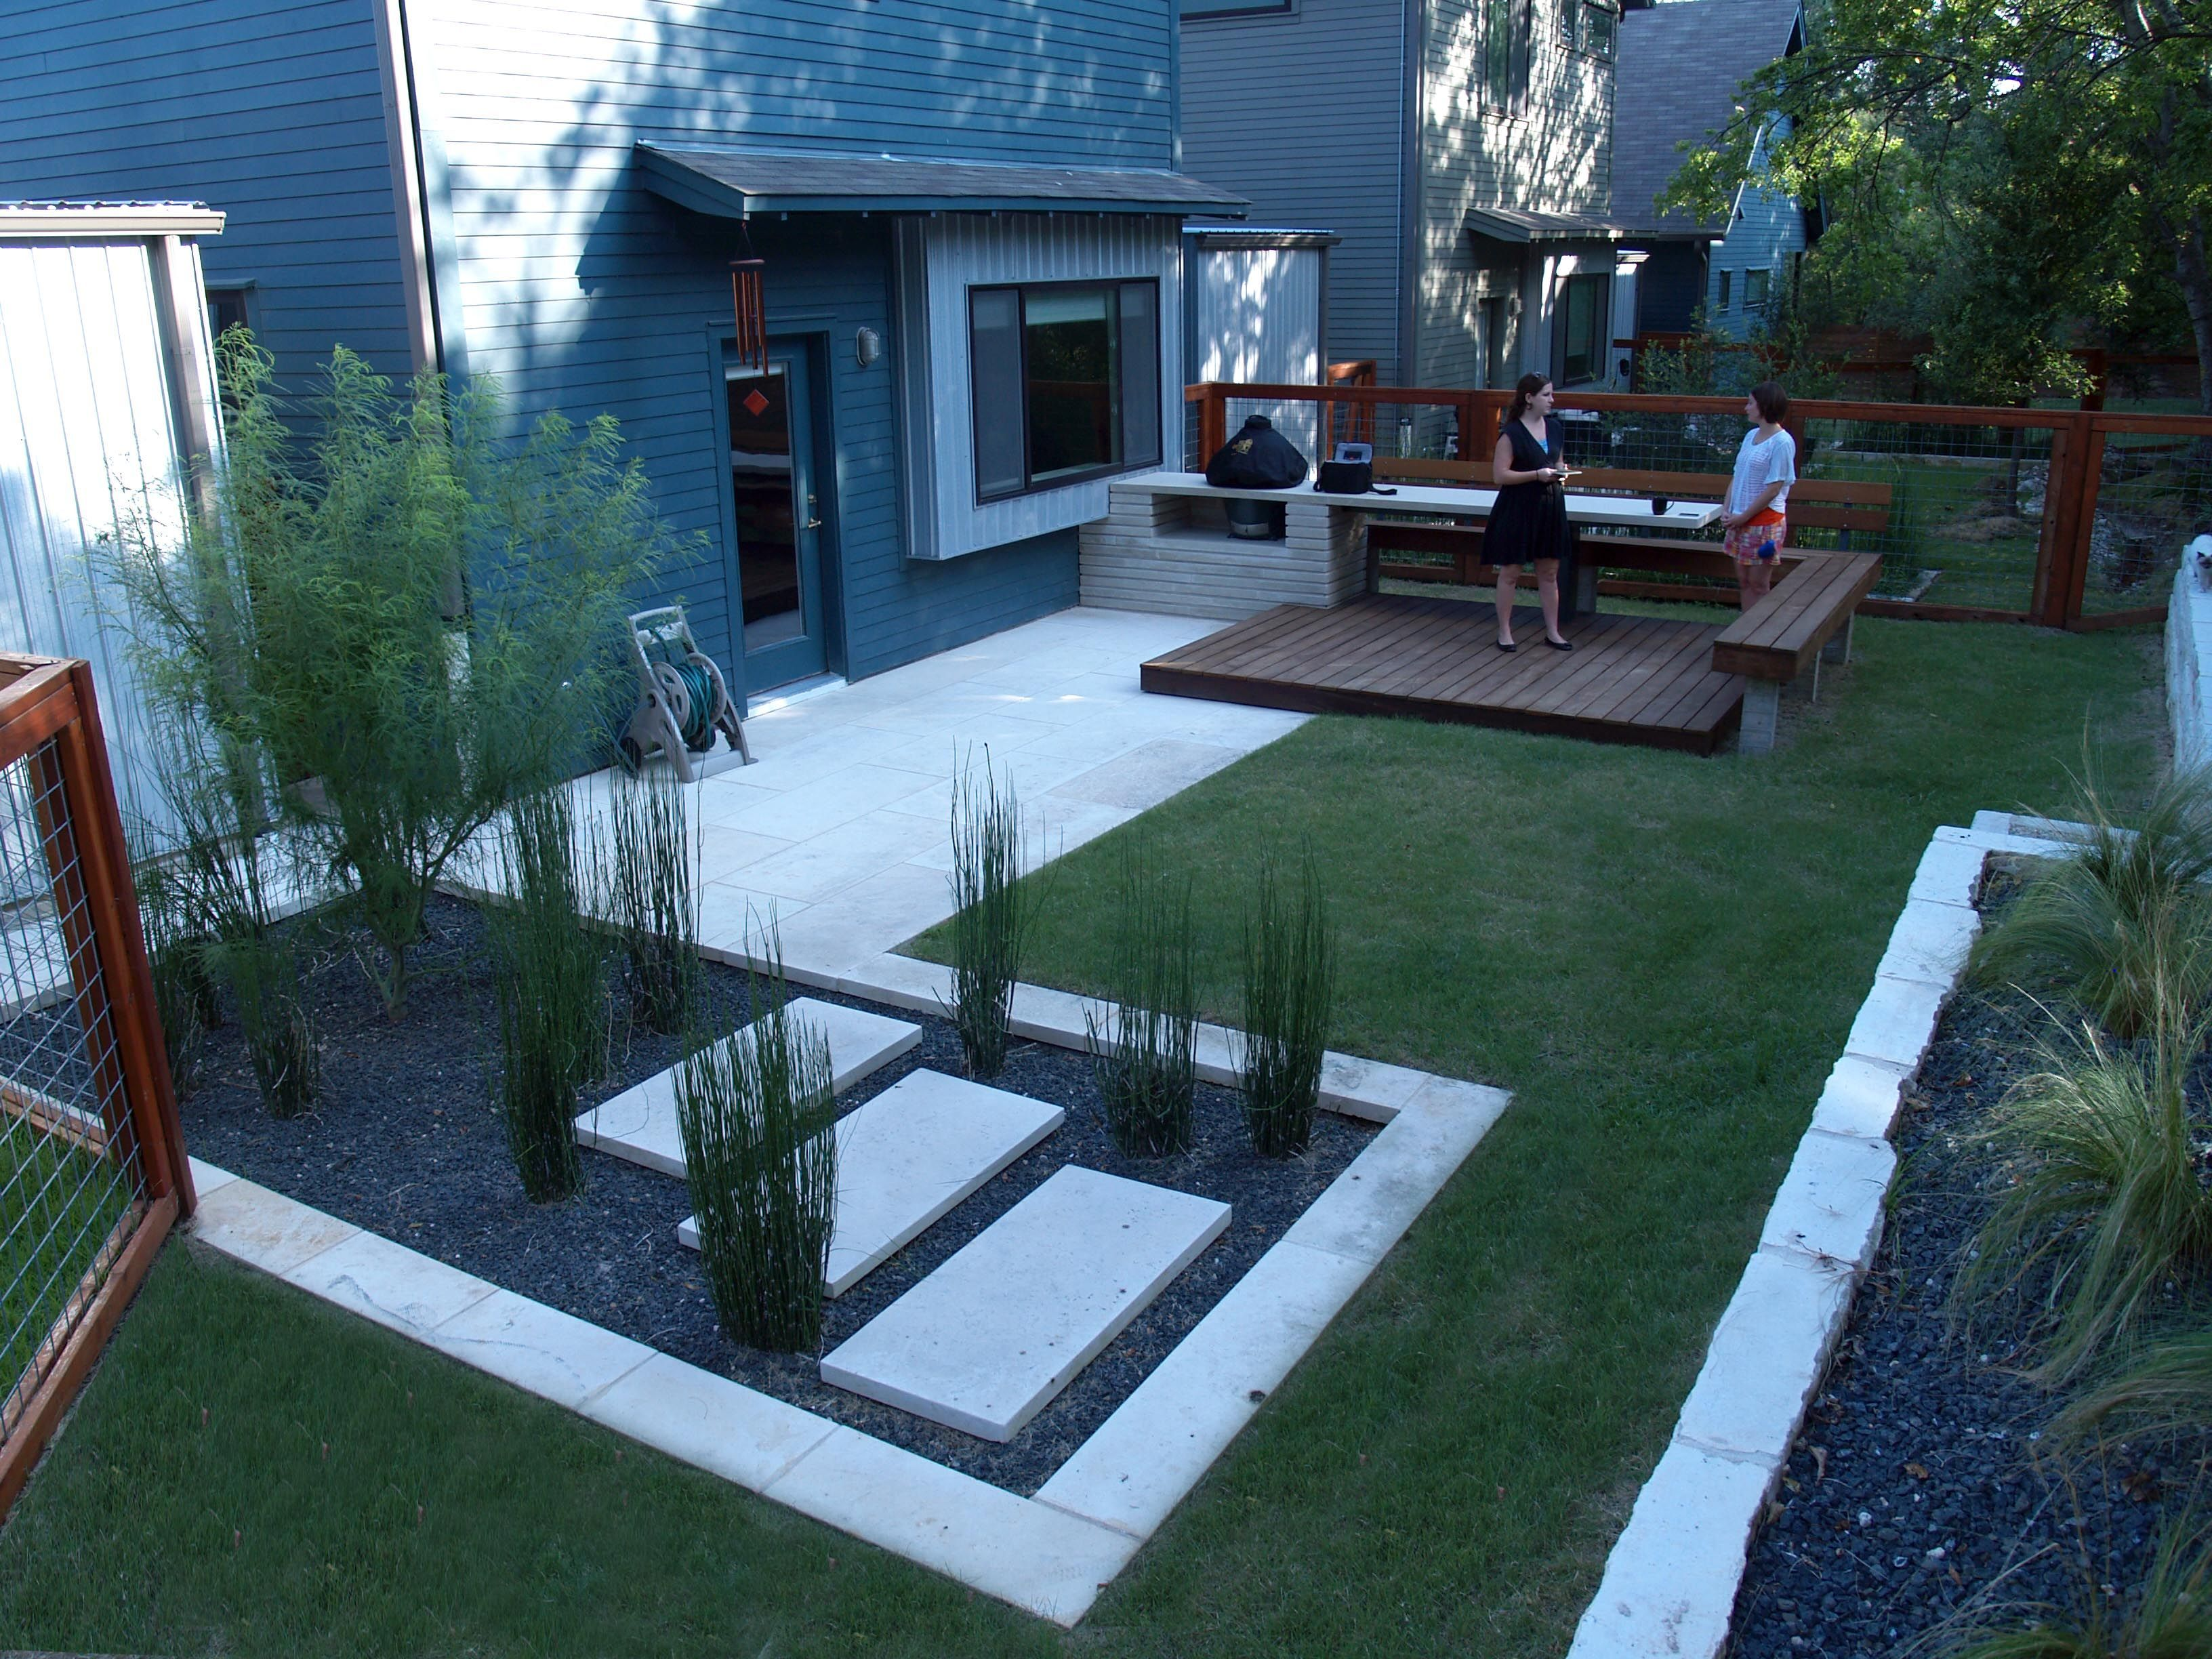 Mesmerizing modern landscaping ideas for small backyards pics design inspiration also